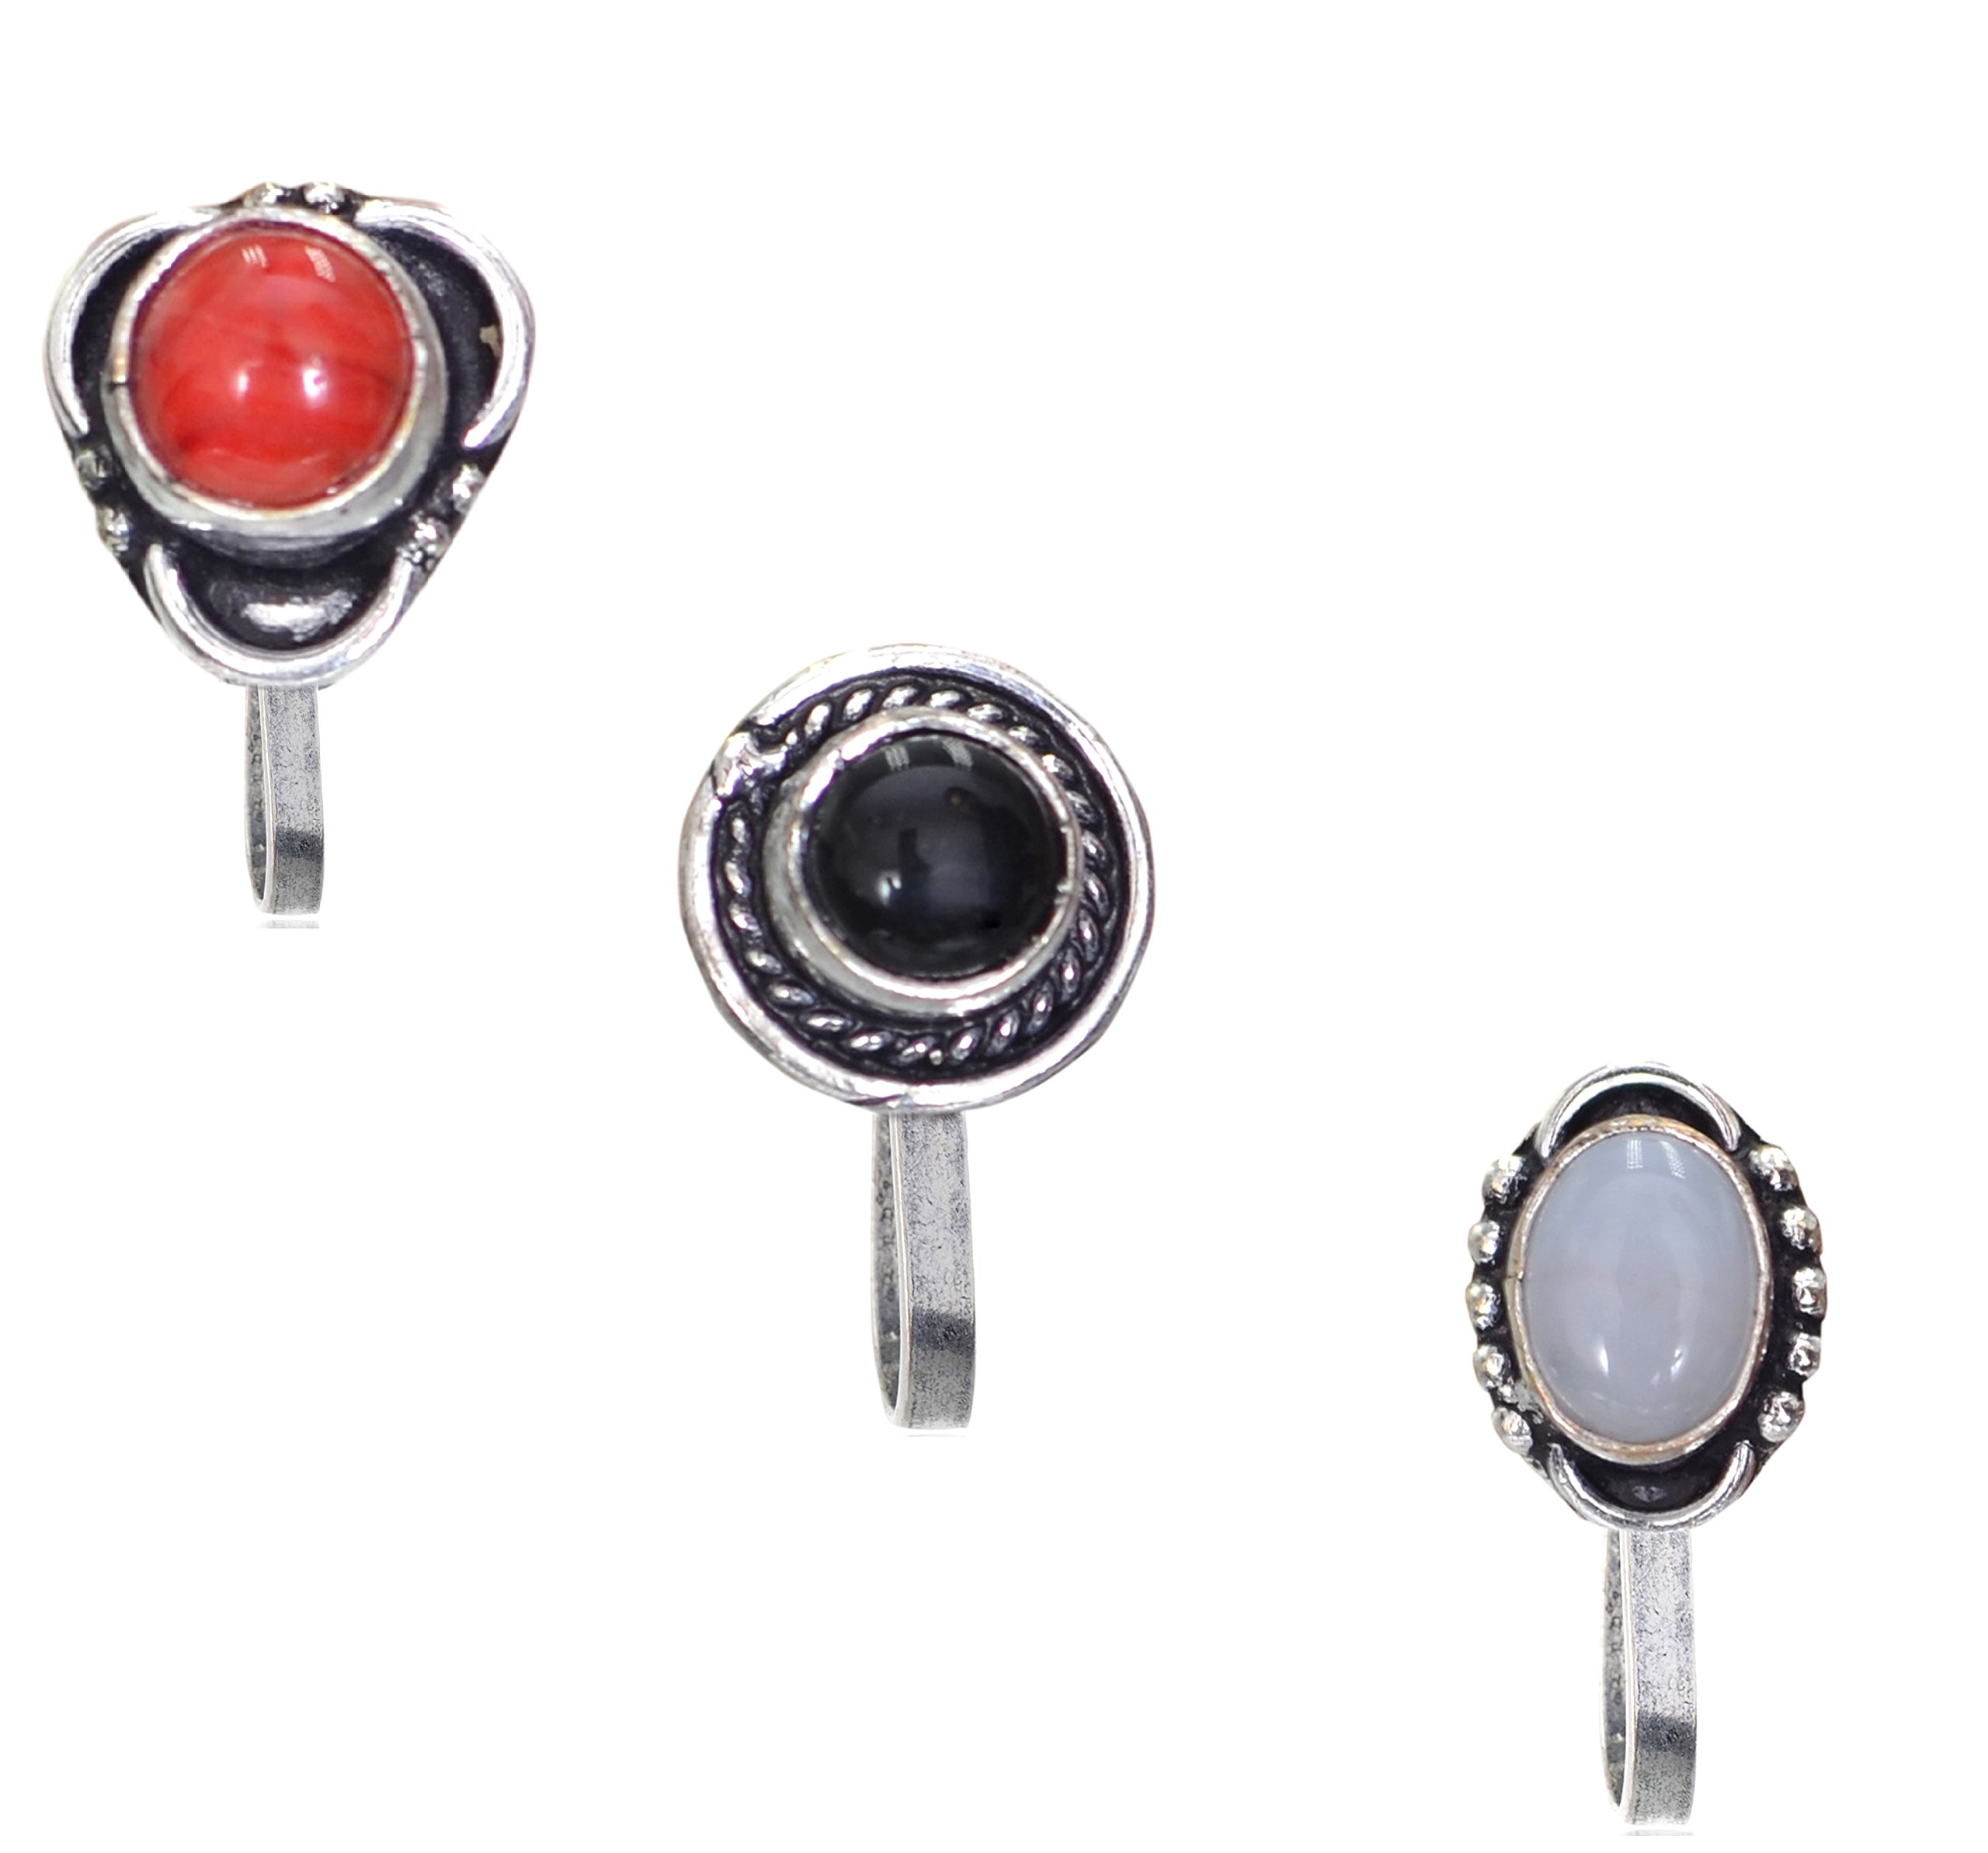 Sansar India Oxidized Silver Plated Stone Press Nose Pin Indian Jewelry for Girls and Women (4 PC)